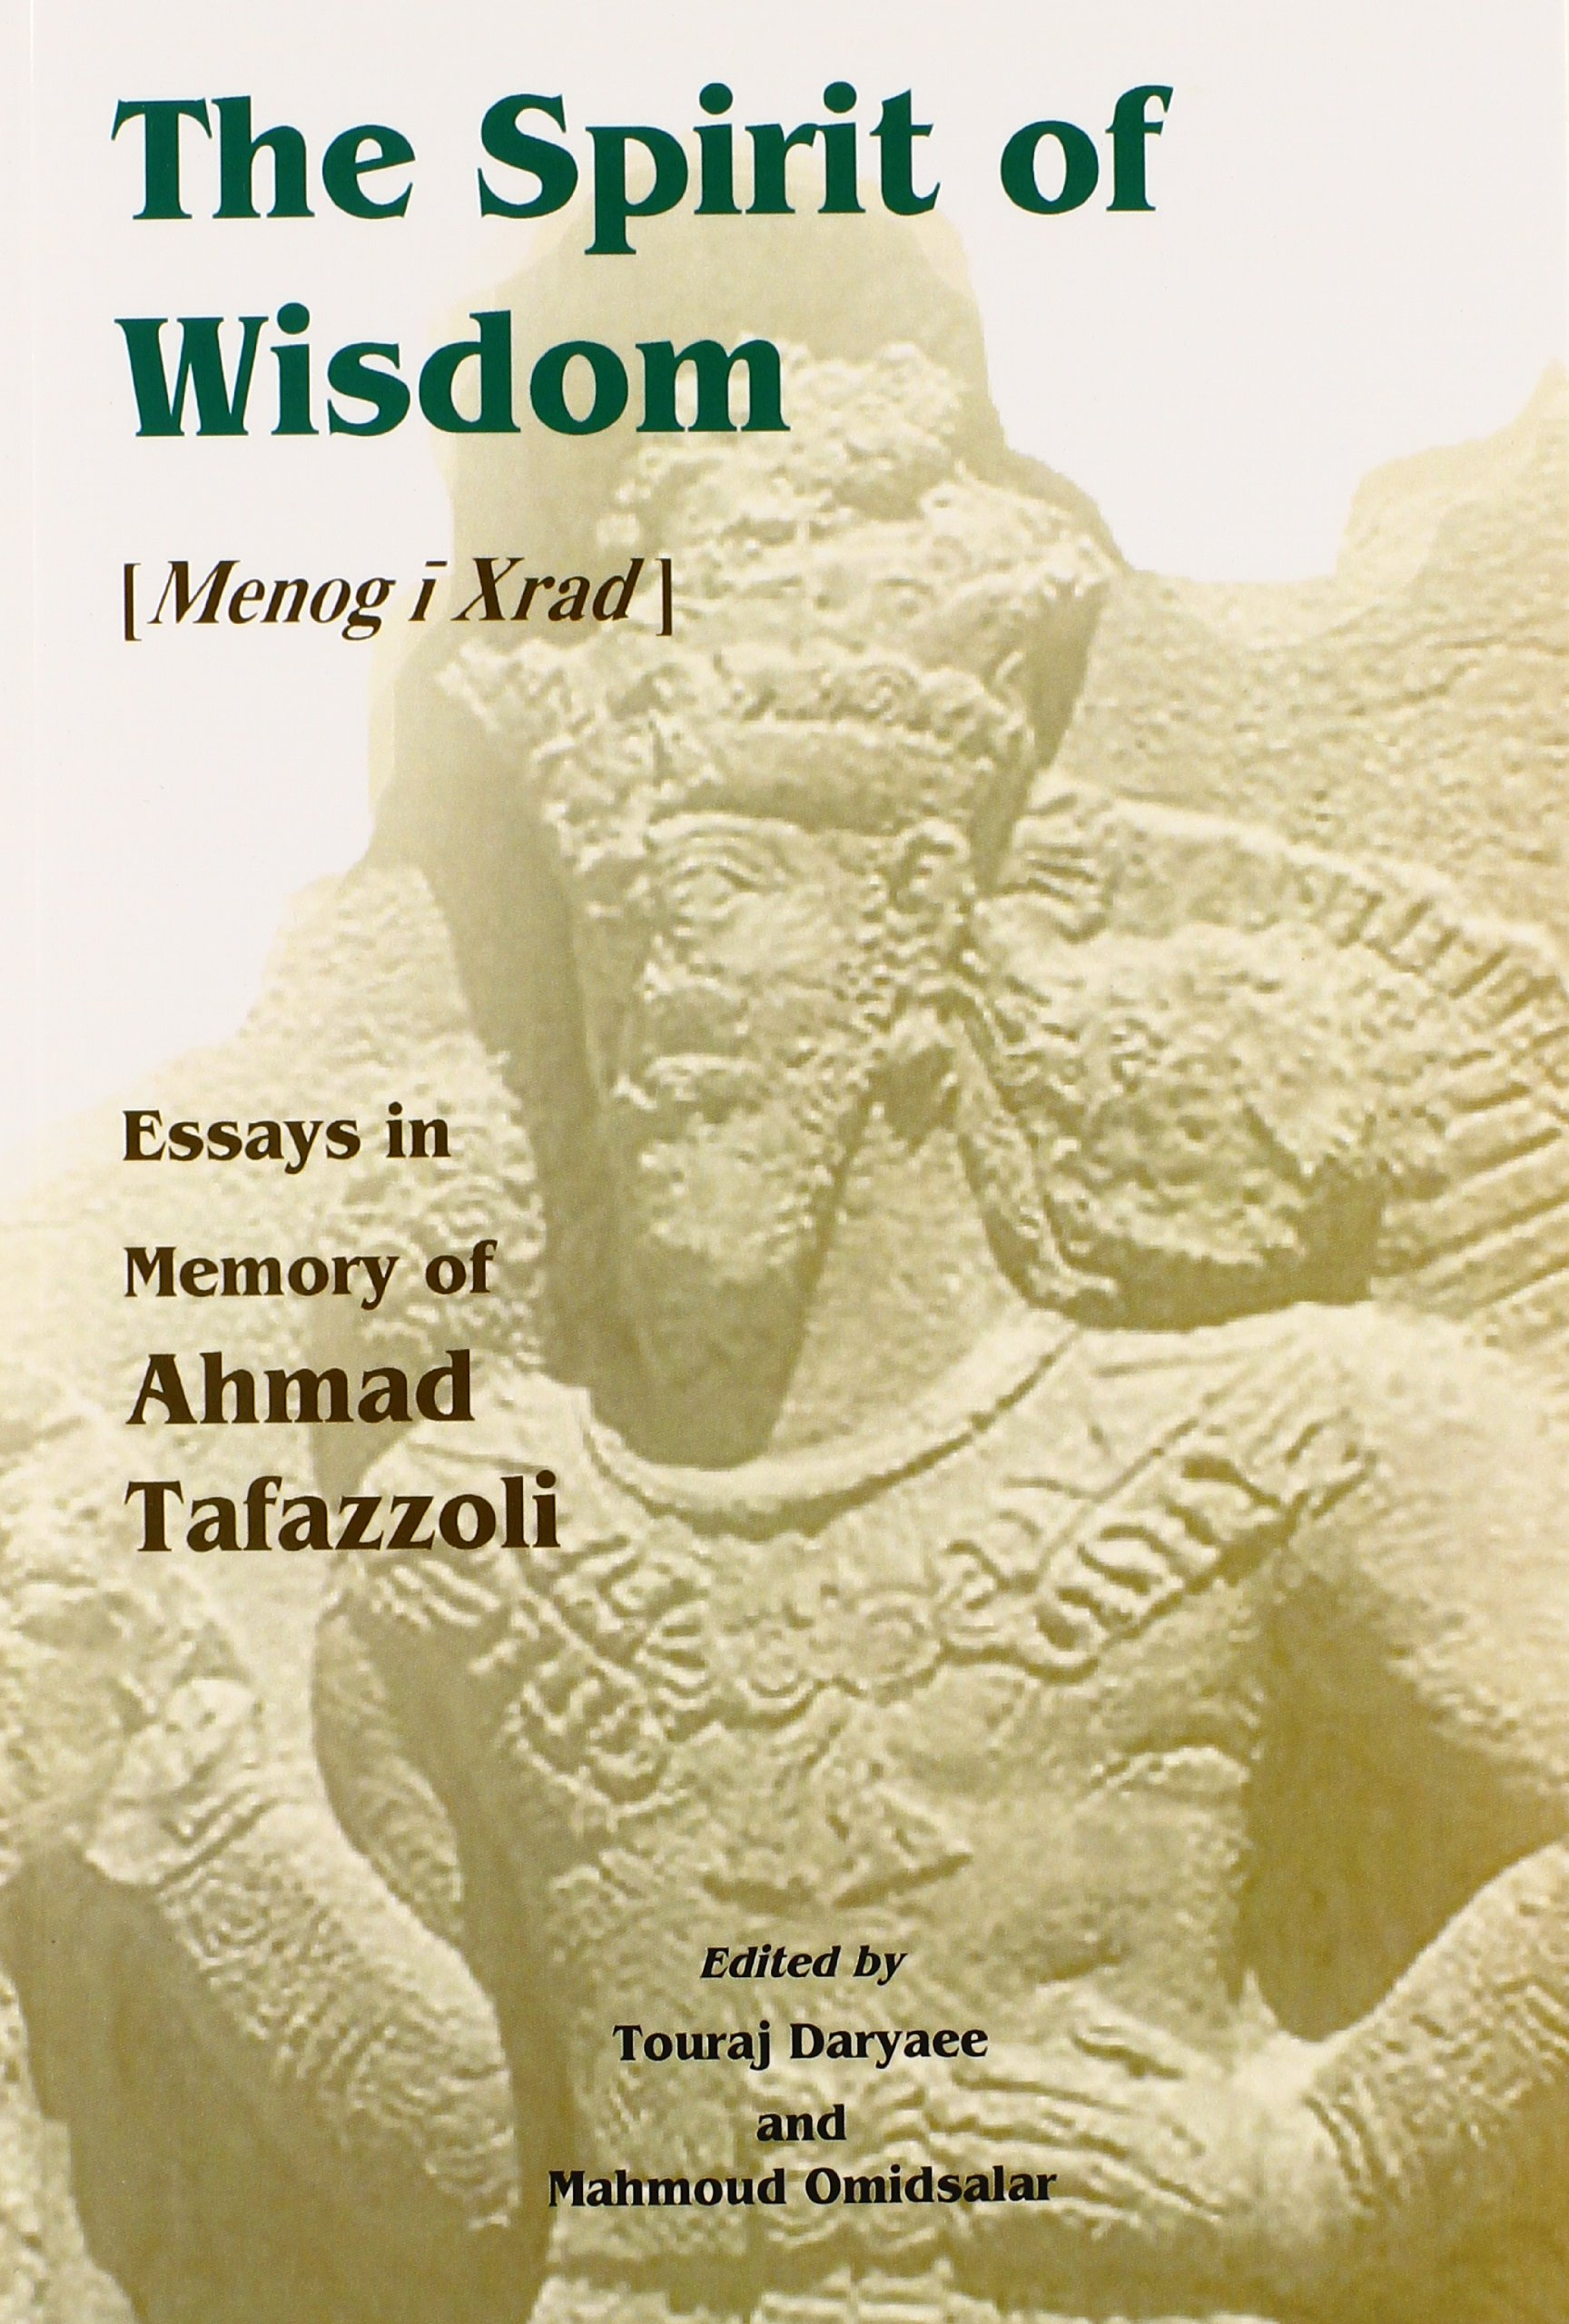 the spirit of wisdom menog i xrad essays in memory of ahmad the spirit of wisdom menog i xrad essays in memory of ahmad tafazzoli mahmoud omidsalar a tafazzoli touraj daryaee 9781568591469 com books